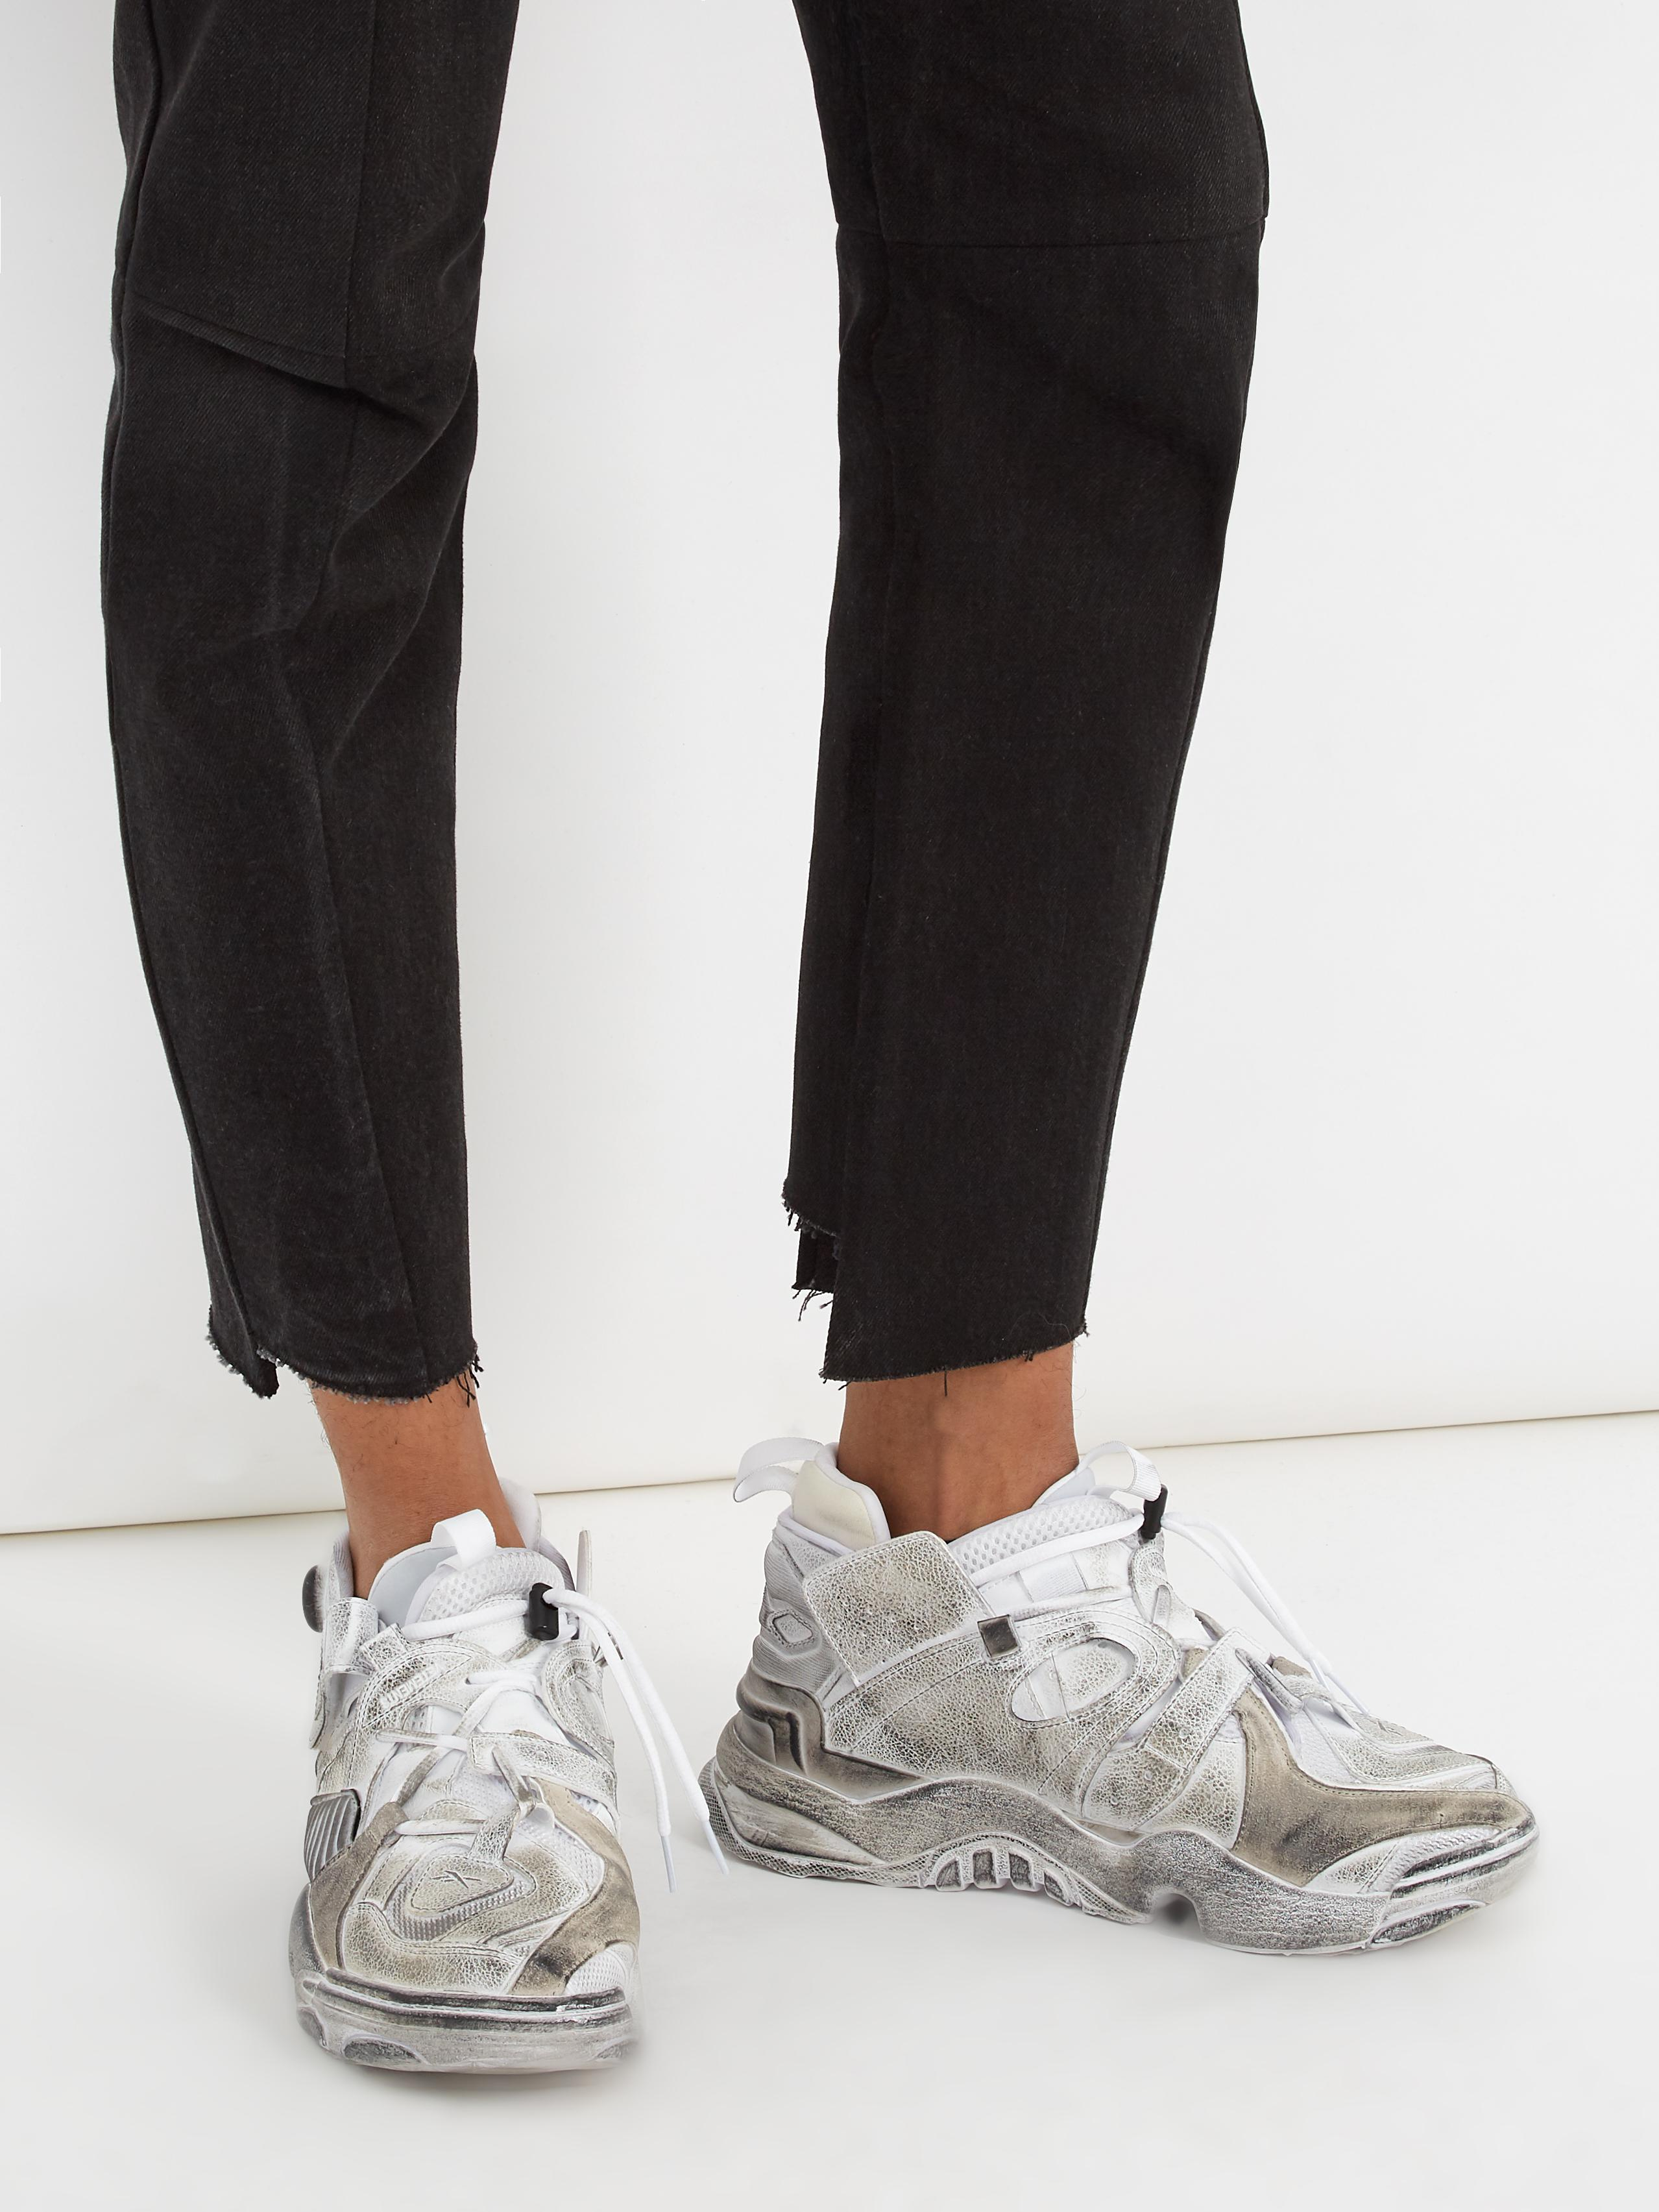 8b2caec3a19 Lyst - Vetements White Reebok Edition Genetically Modified Pump High ...